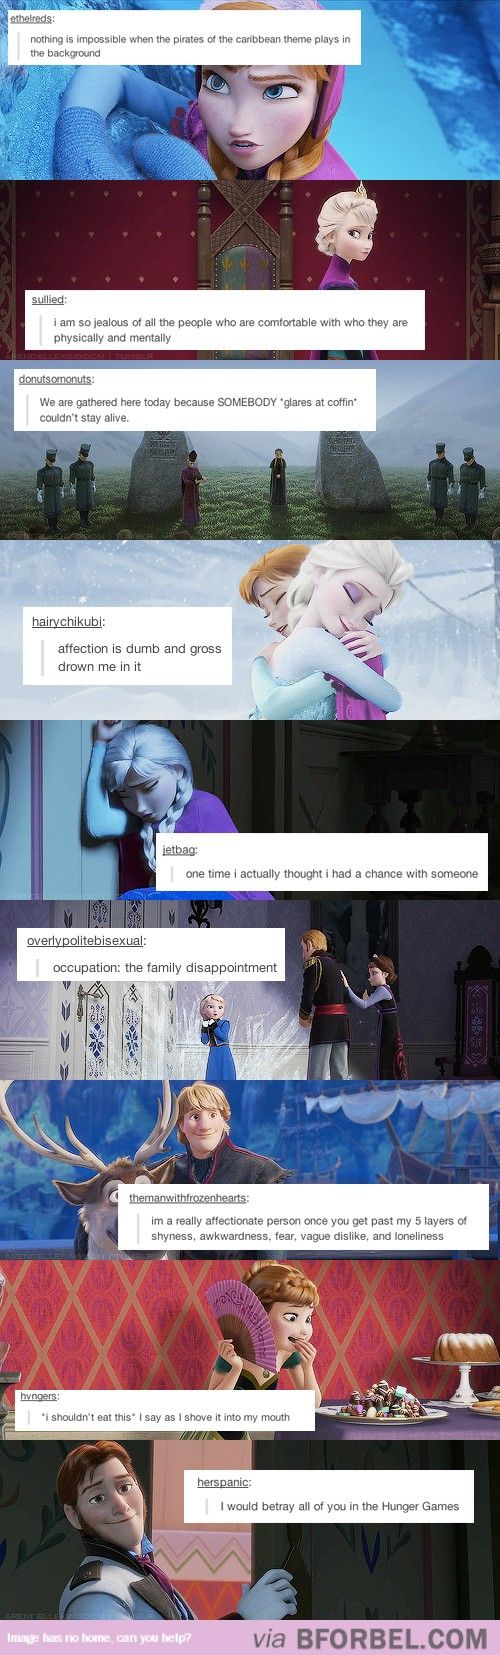 Tumblr posts paired with frozen characters. ~ whoa. That last one.